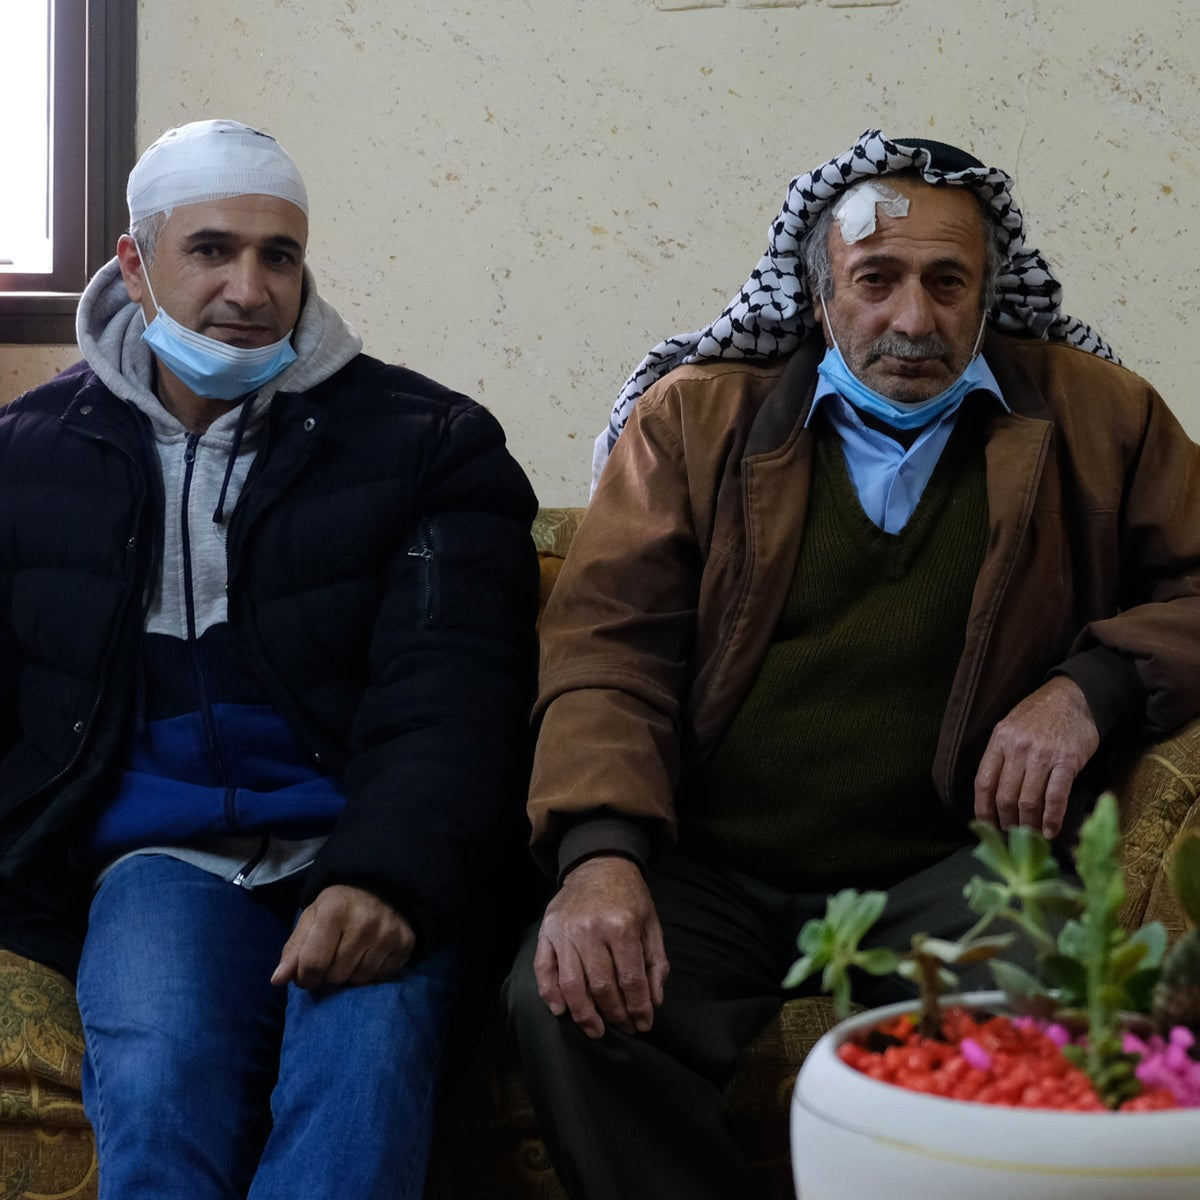 Izz a-Din Zinadin, left, and his father Mohammed, this week. After they filed a complaint, the investigator told them to go home and wait for a call. It's unlikely to come.